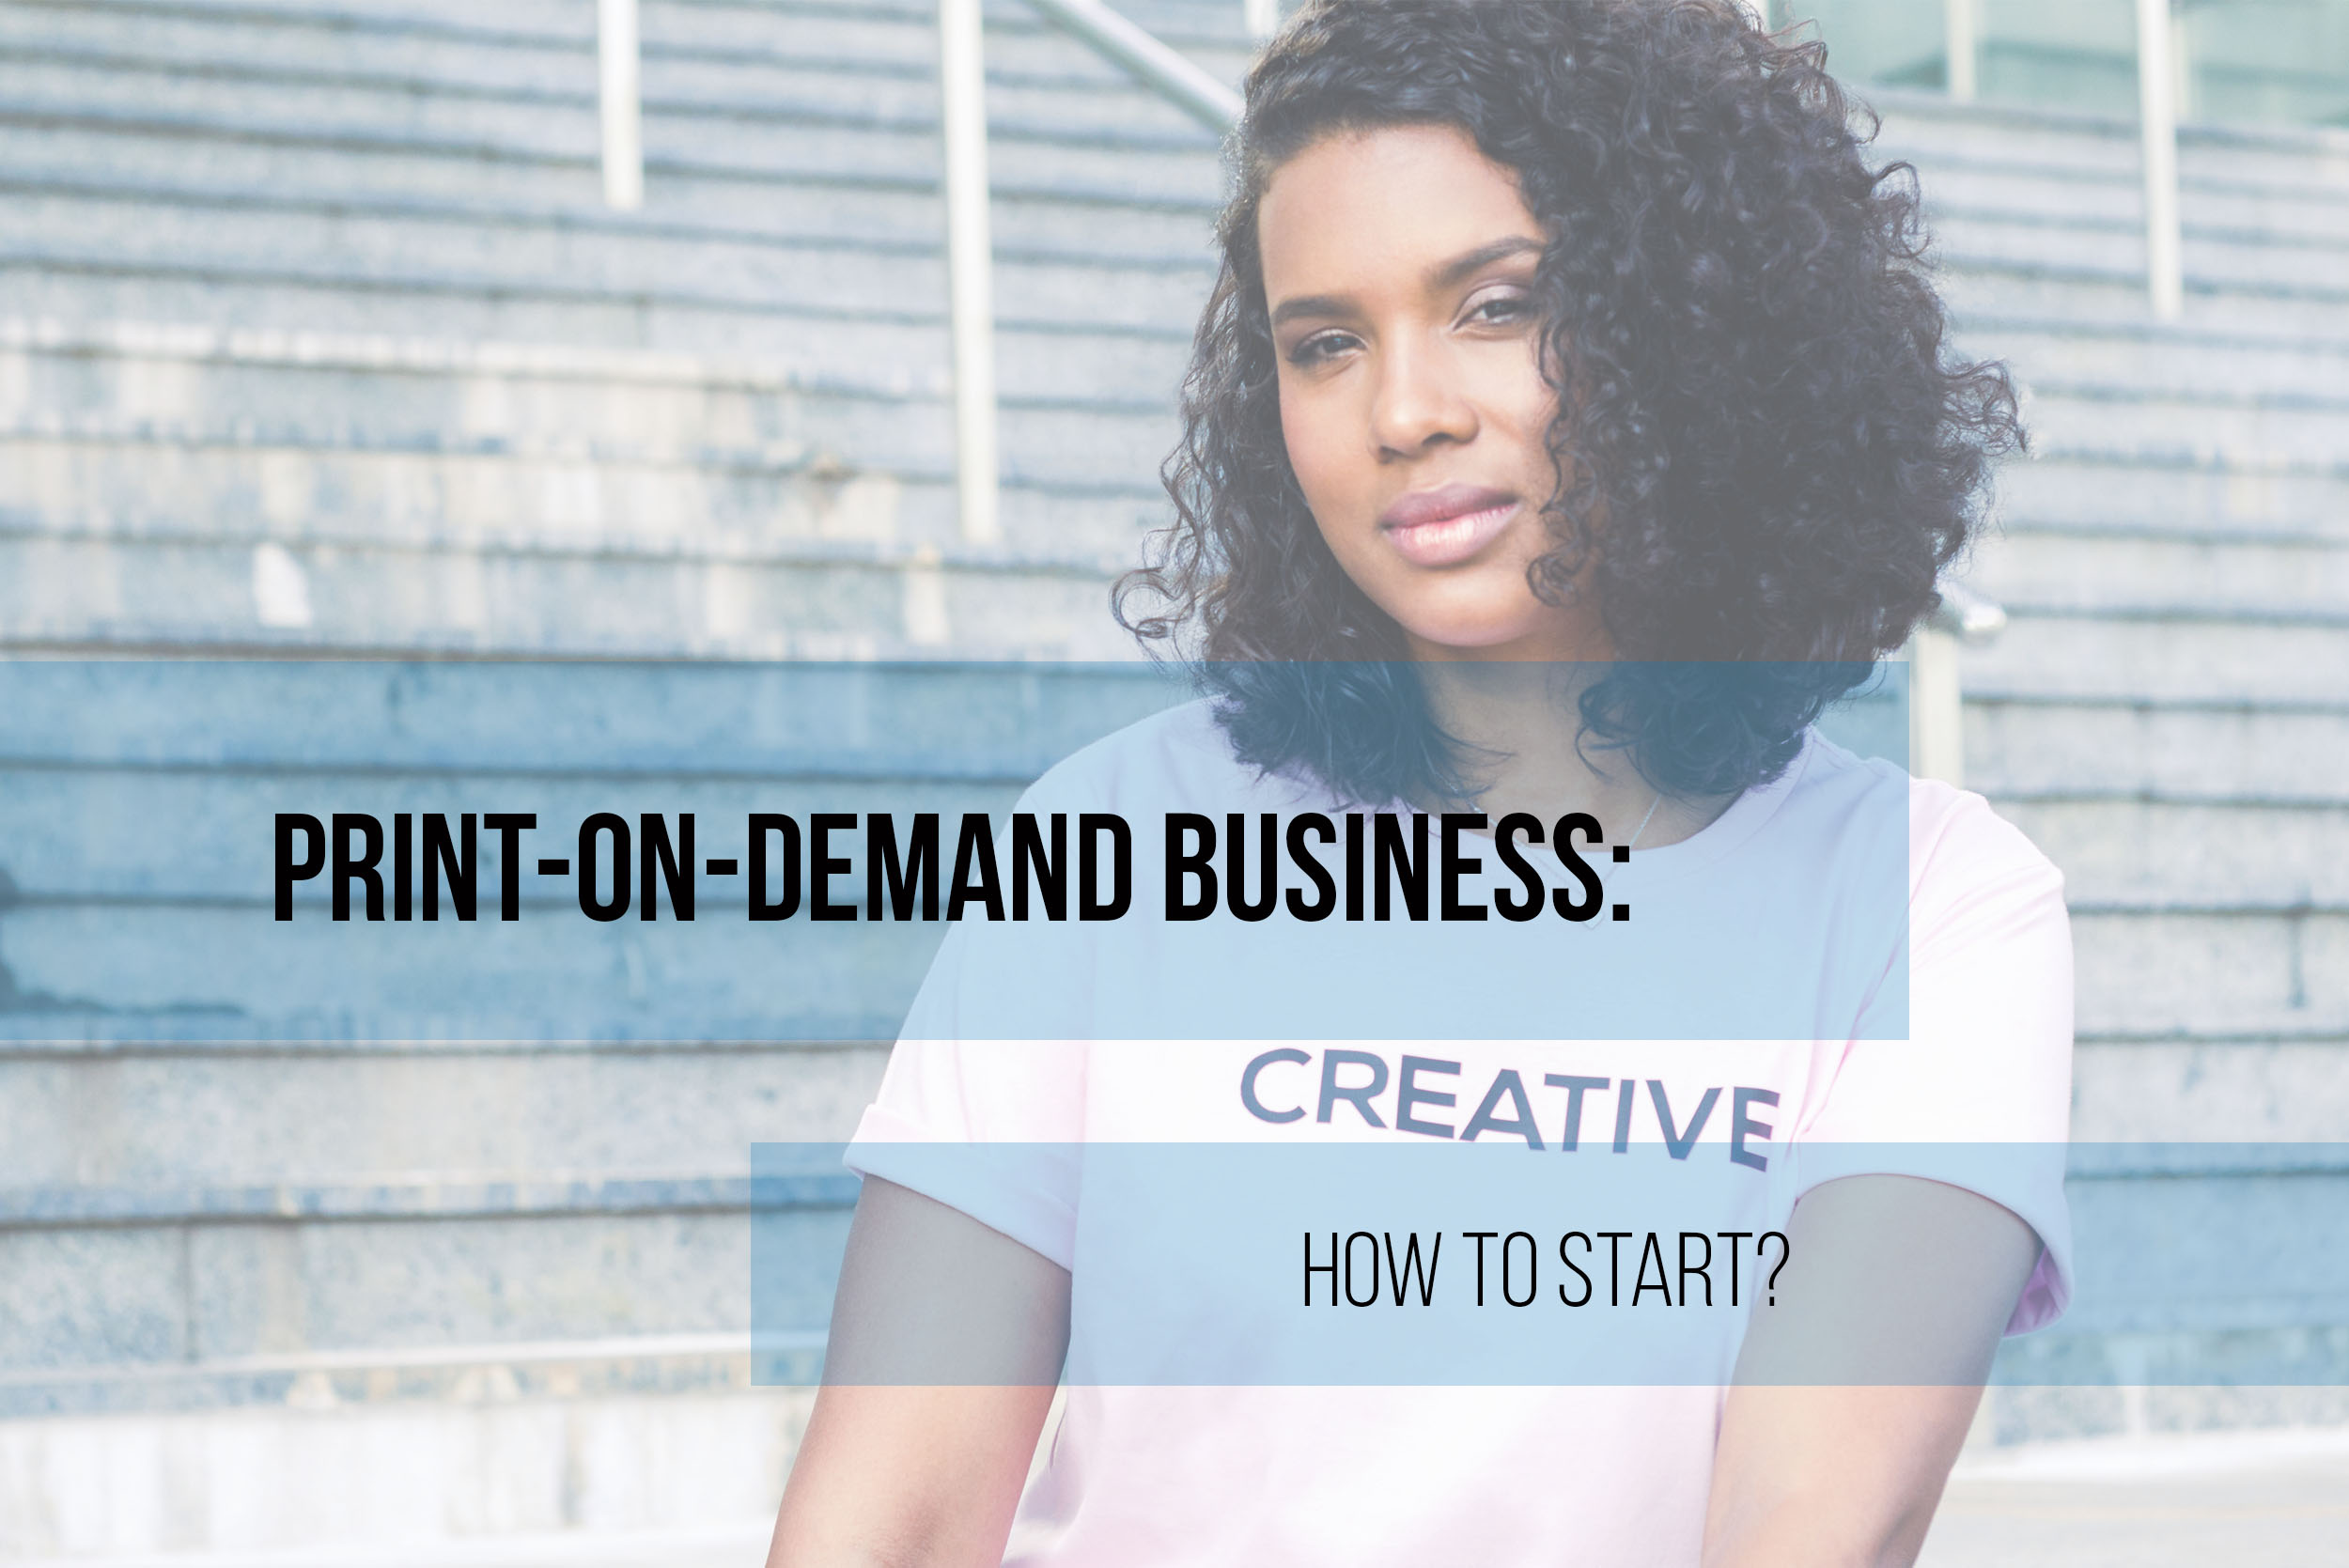 Print-on-demand business: how to start?